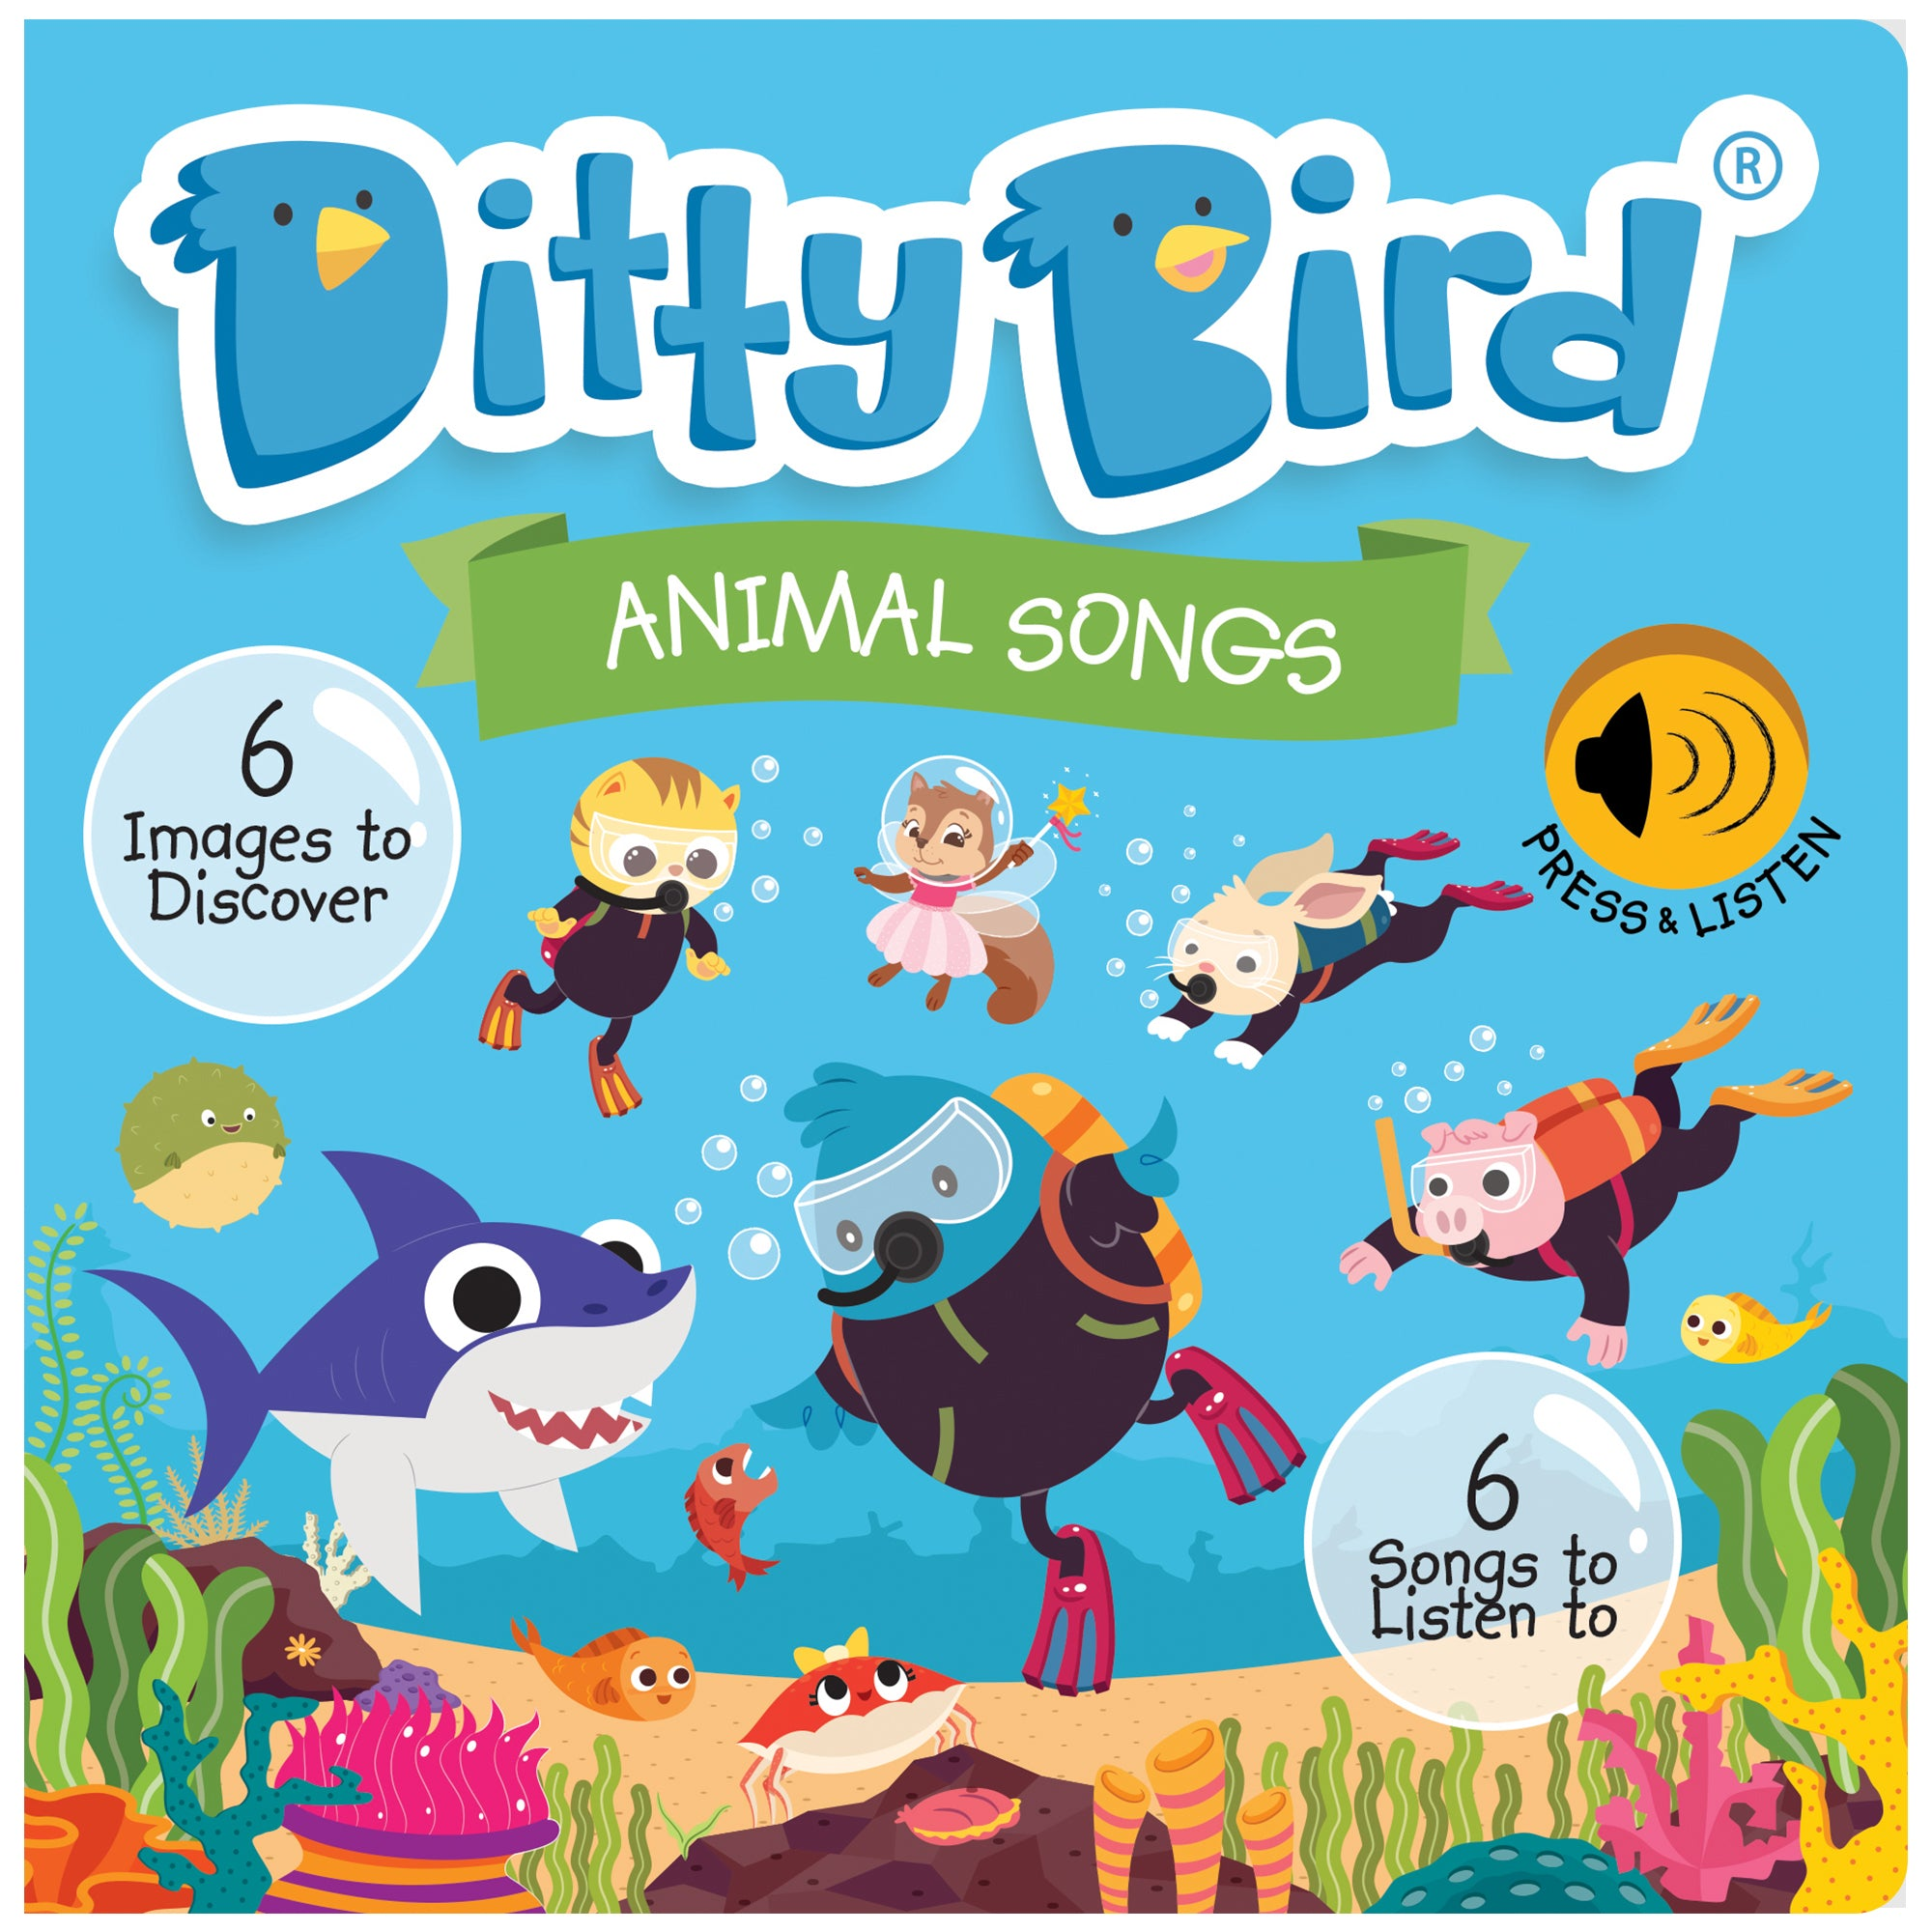 NEW! Ditty Bird - Animal Songs